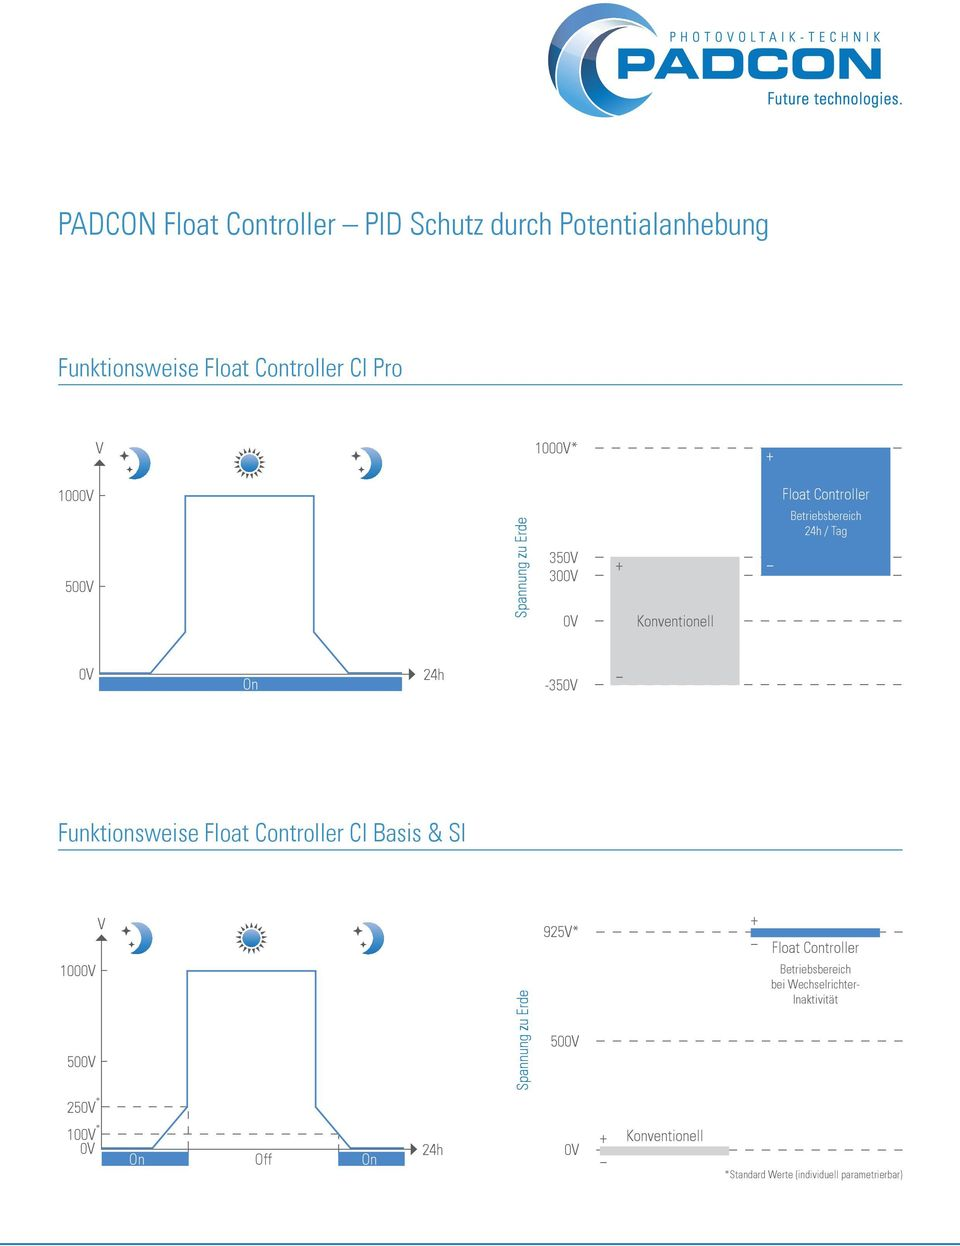 Funktionsweise Float Controller CI Basis & SI 1000V 500V V Spannung zu Erde 925V* 500V + Float Controller